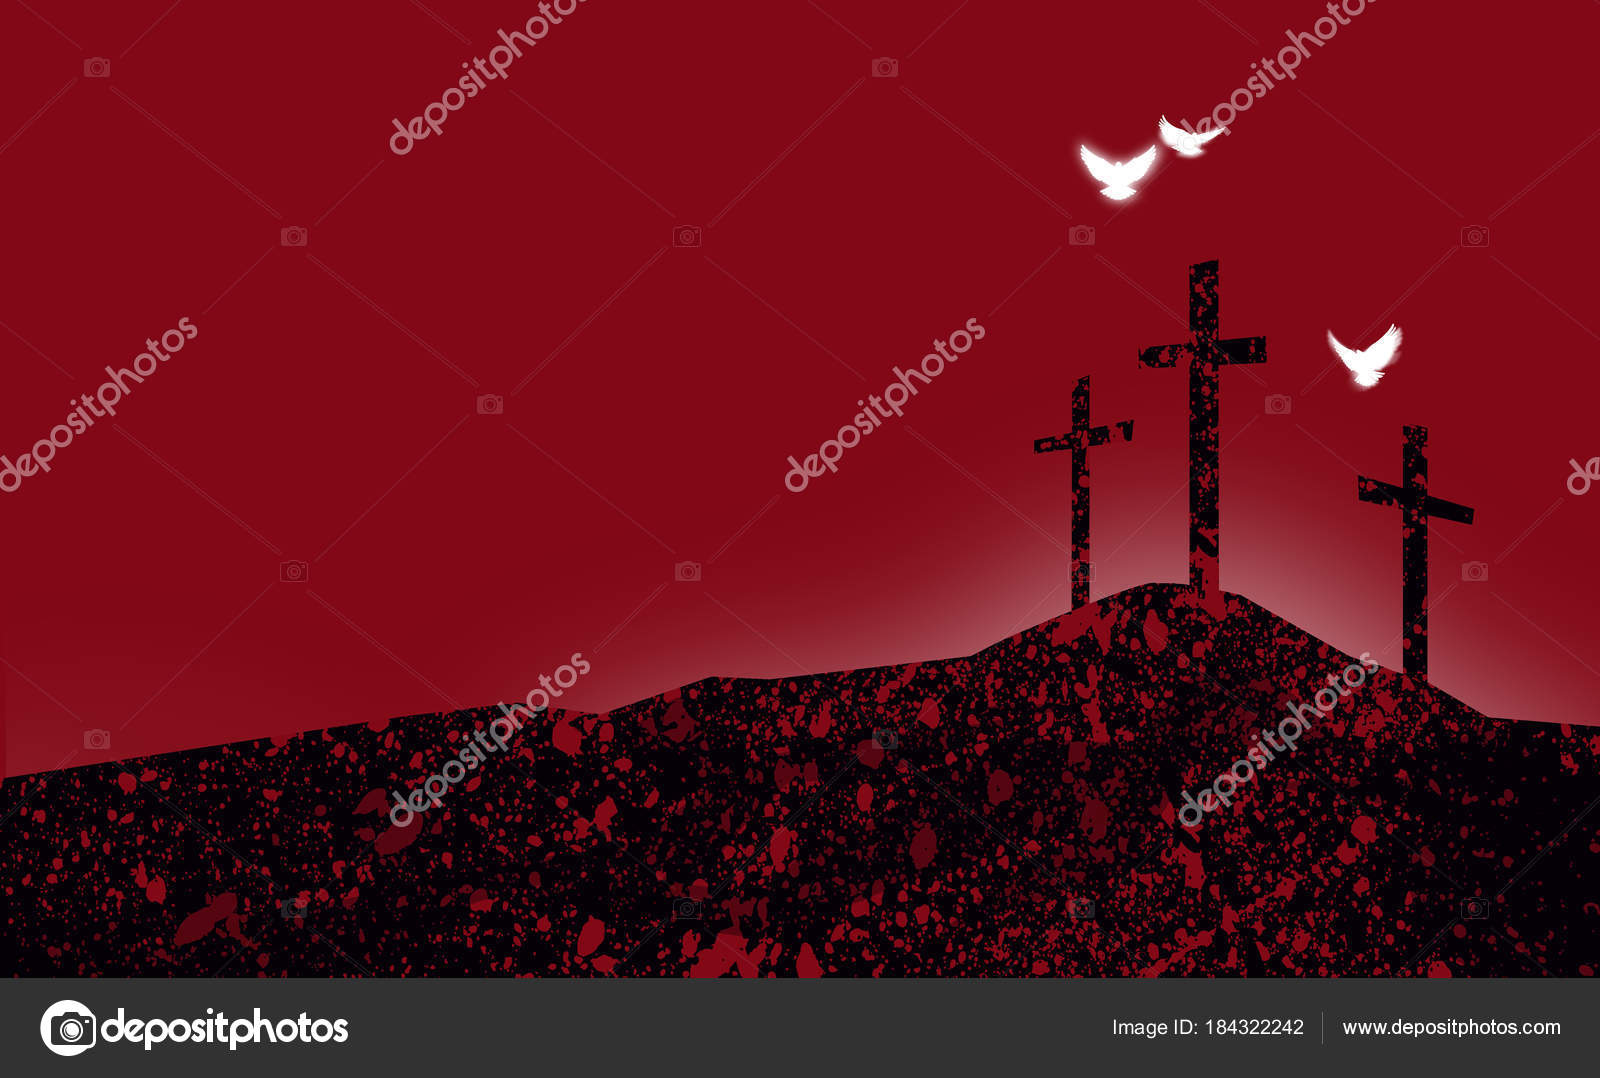 graphic christian crosses of jesus abstract landscape with spiritual